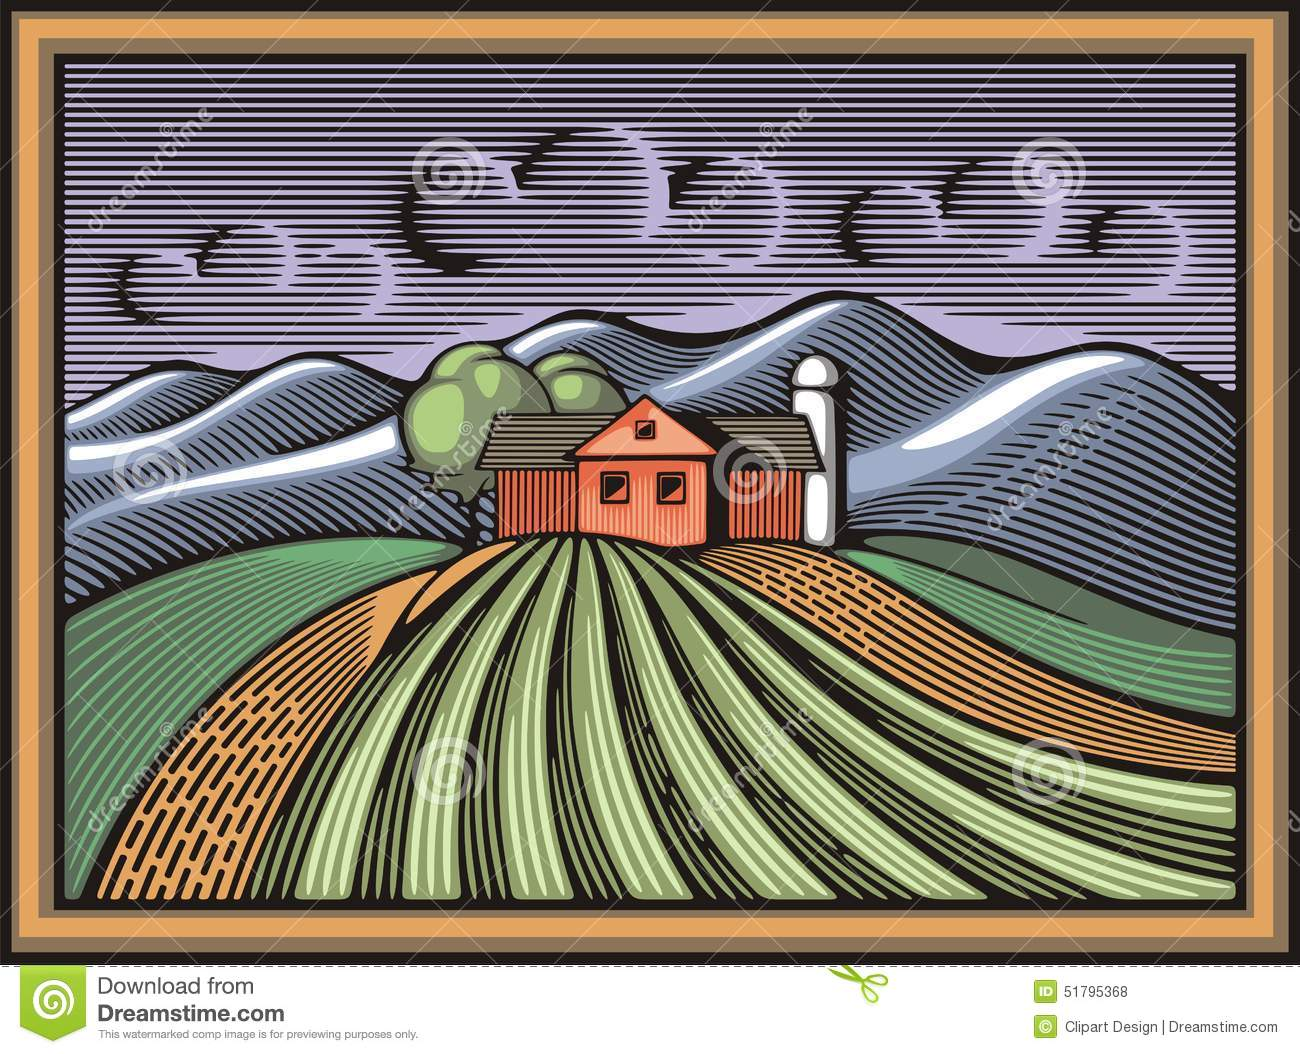 Organic Farming Vector Illustration in Woodcut Style